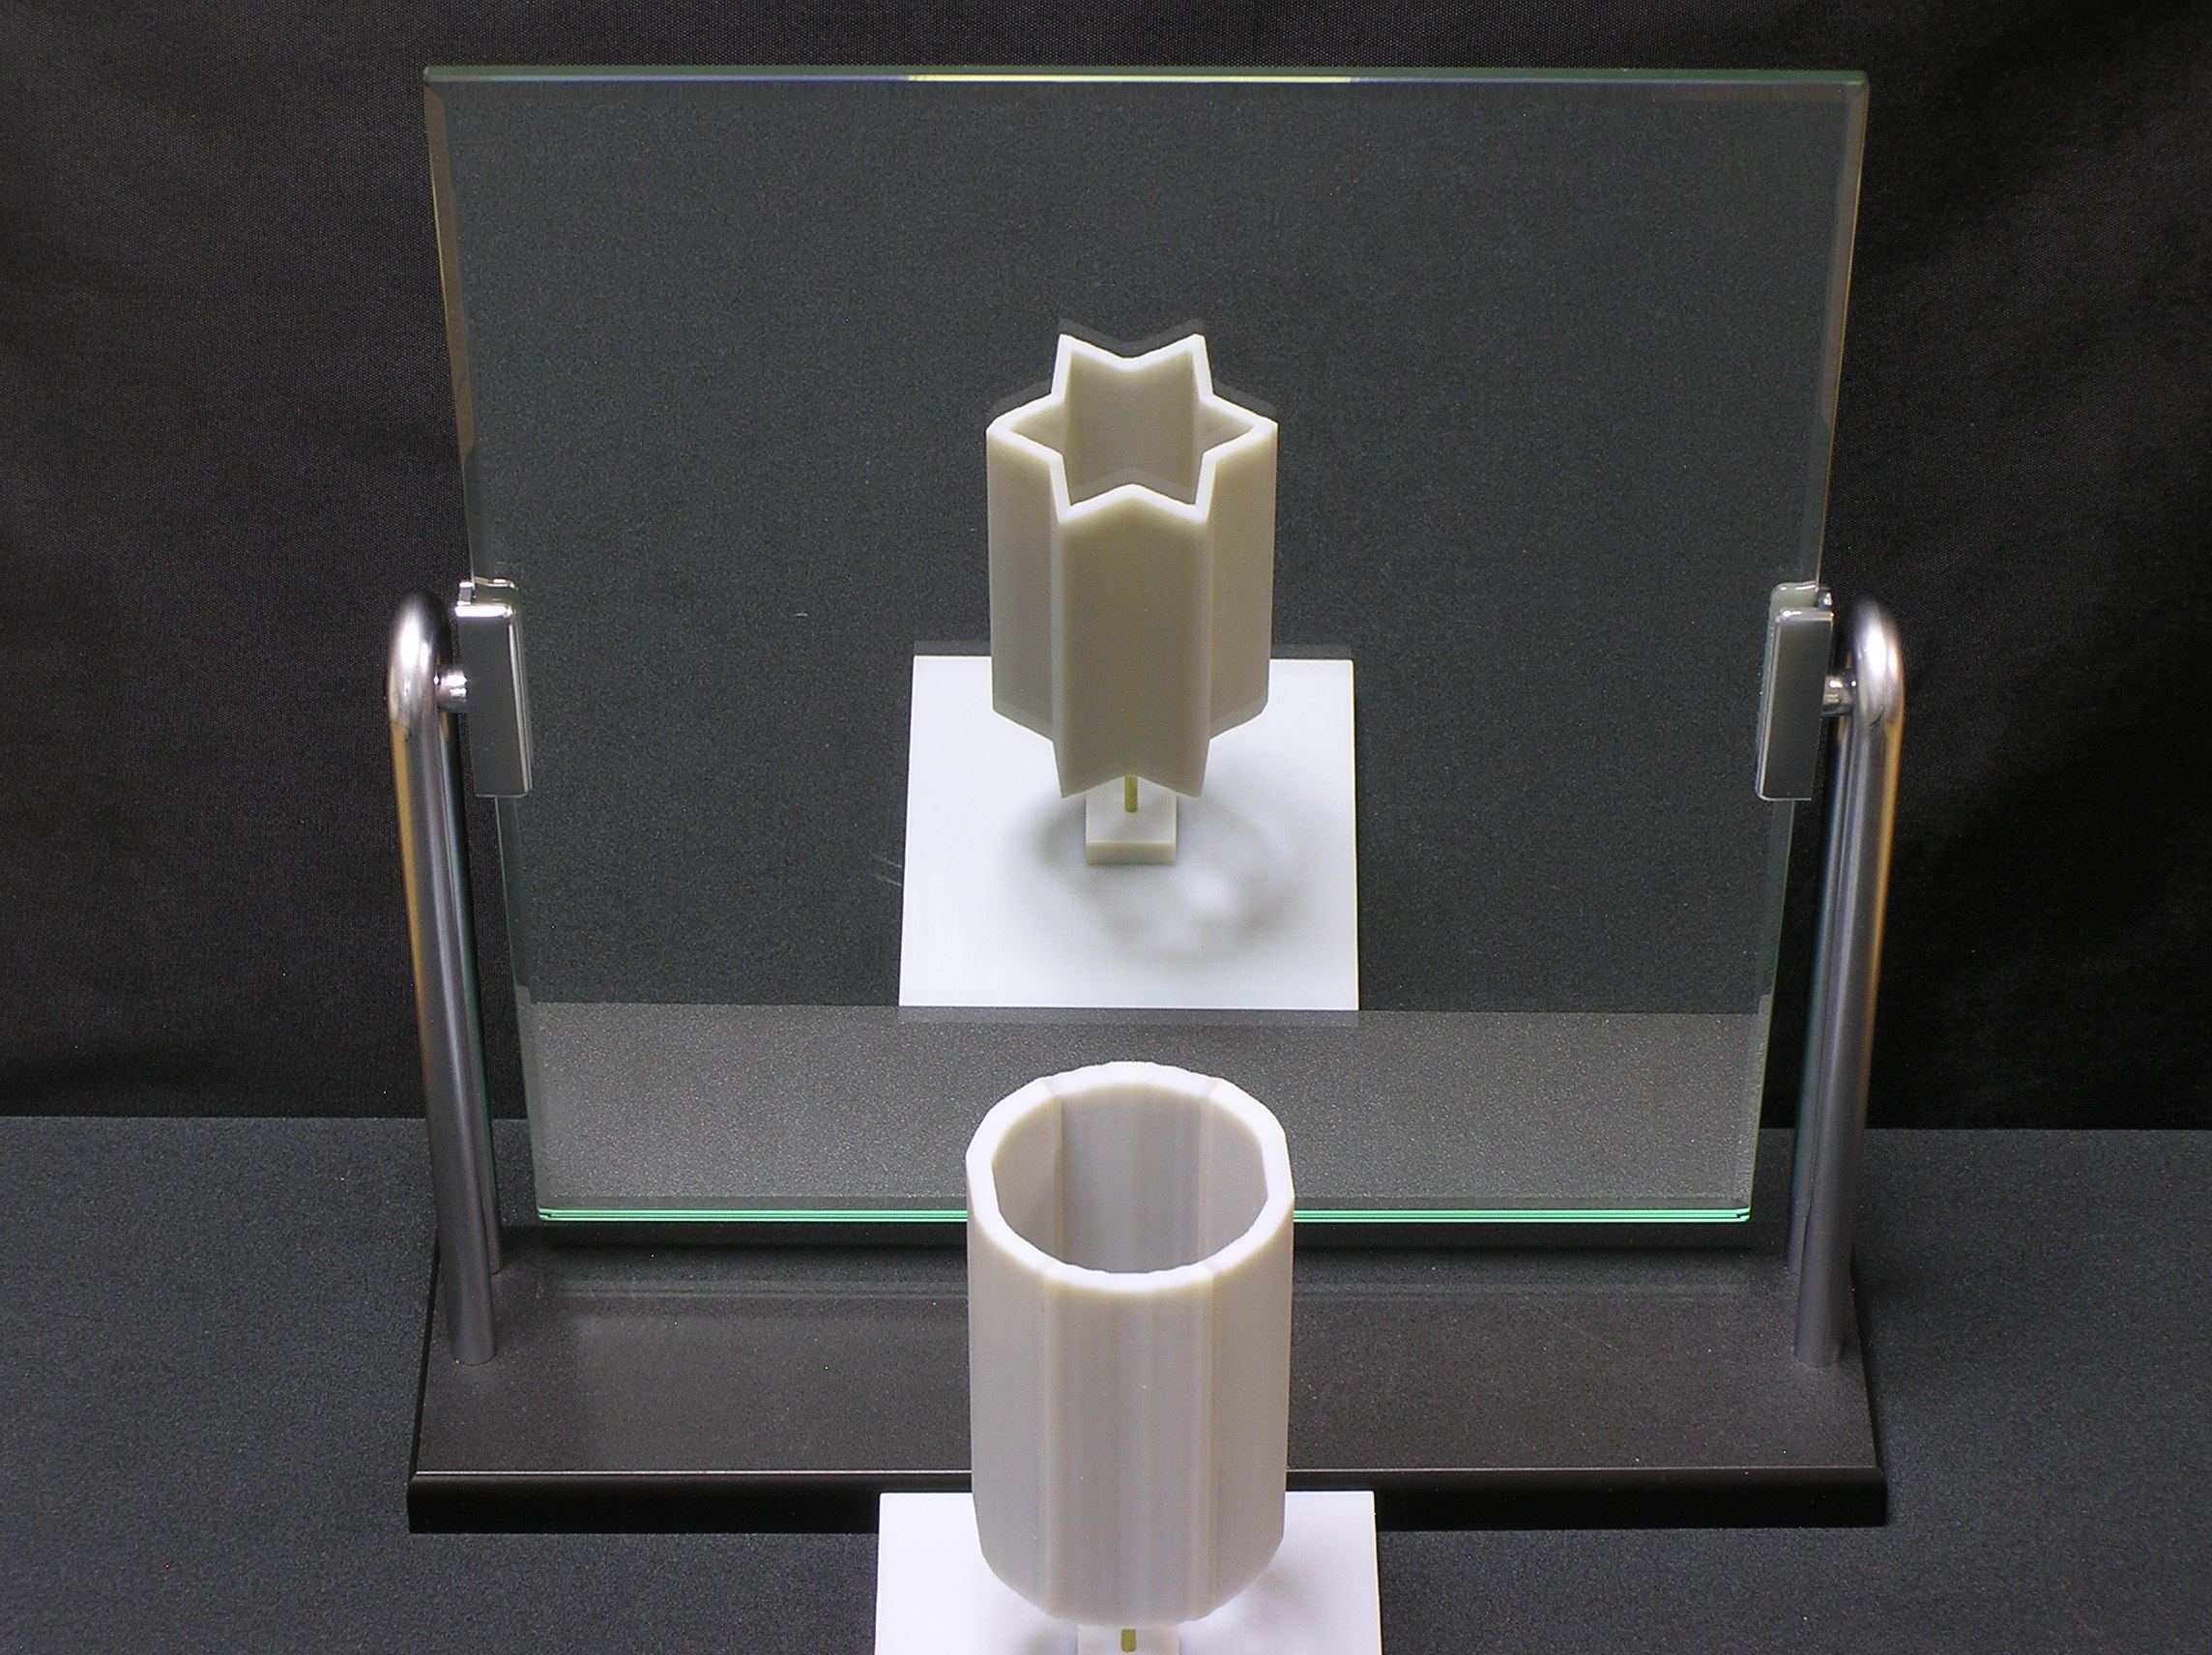 Reflection of cylinder in mirror